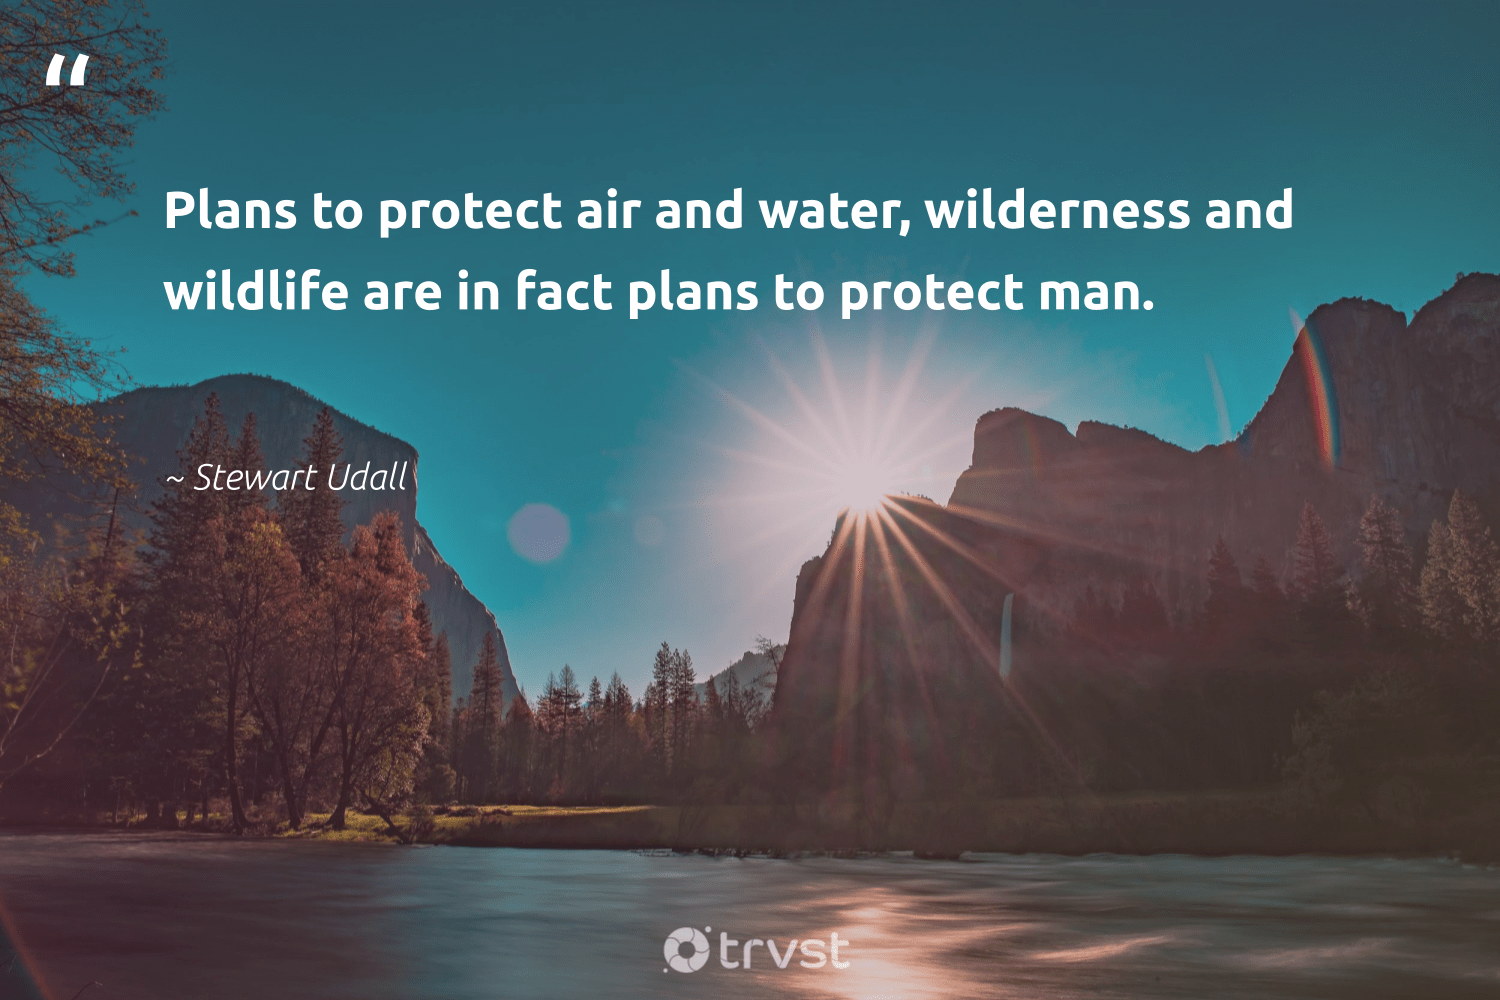 """""""Plans to protect air and water, wilderness and wildlife are in fact plans to protect man.""""  - Stewart Udall #trvst #quotes #ocean #water #wilderness #wildlife #oceanpollution #volunteer #gogreen #changetheworld #river #wildernessnation"""